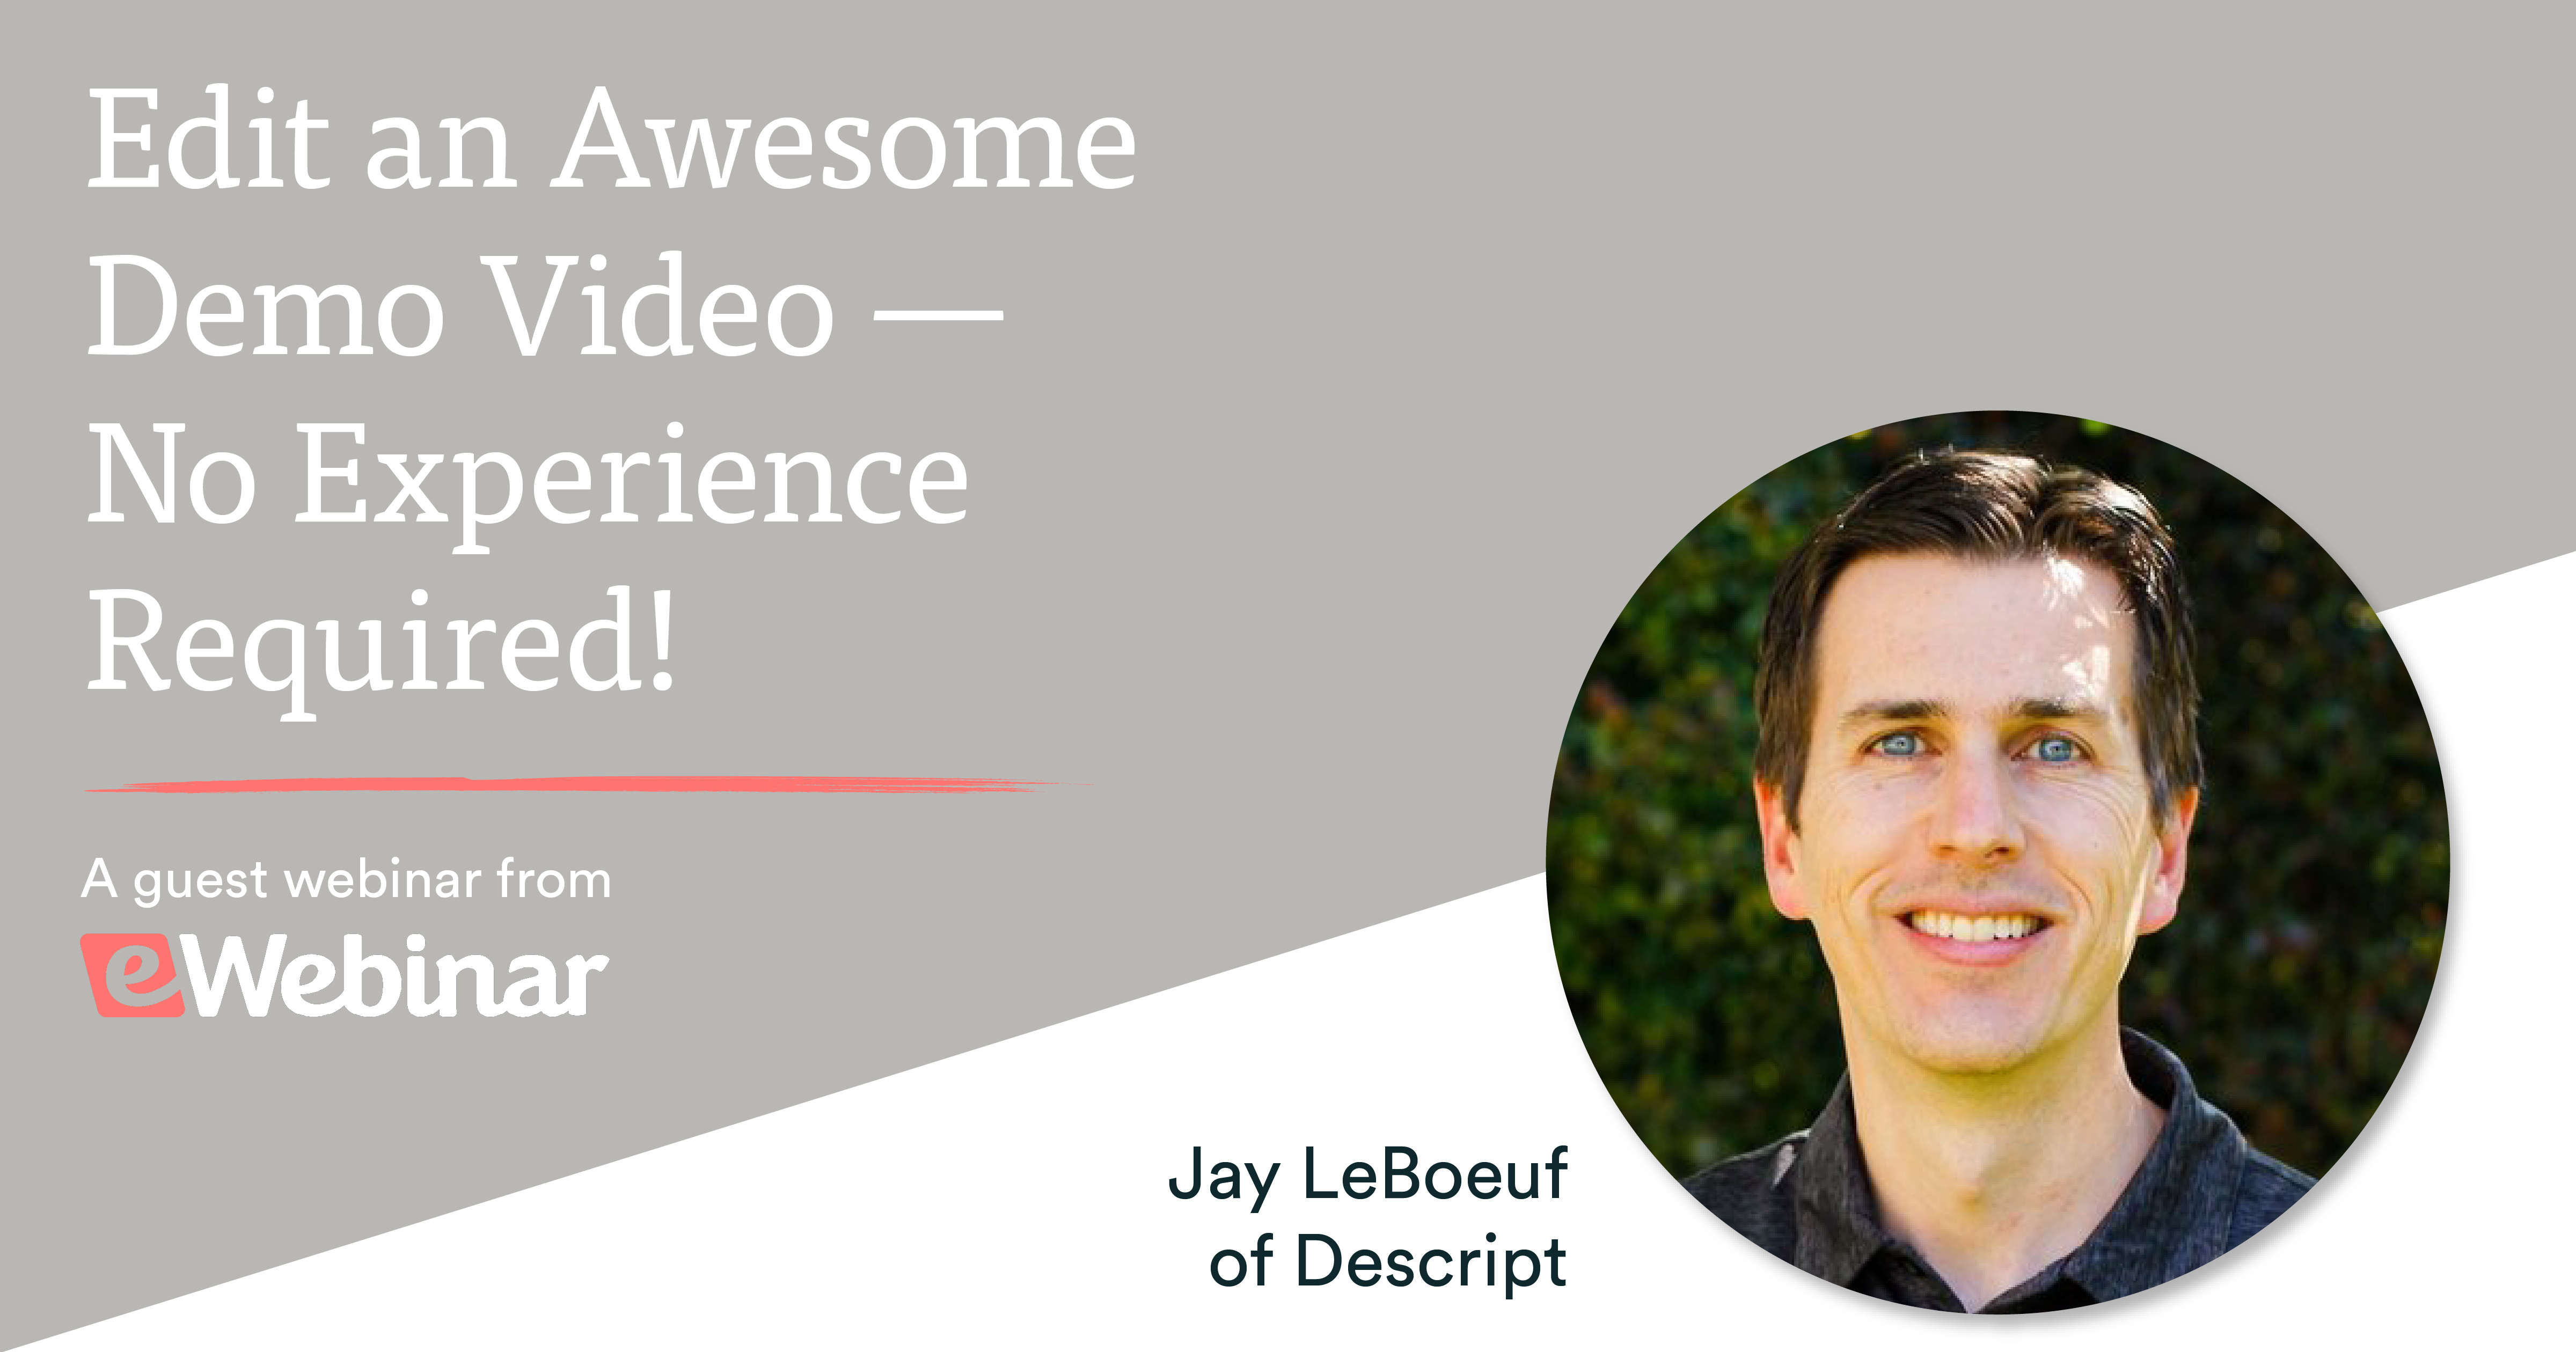 Edit an Awesome Demo Video - No Experience Required! with Descript